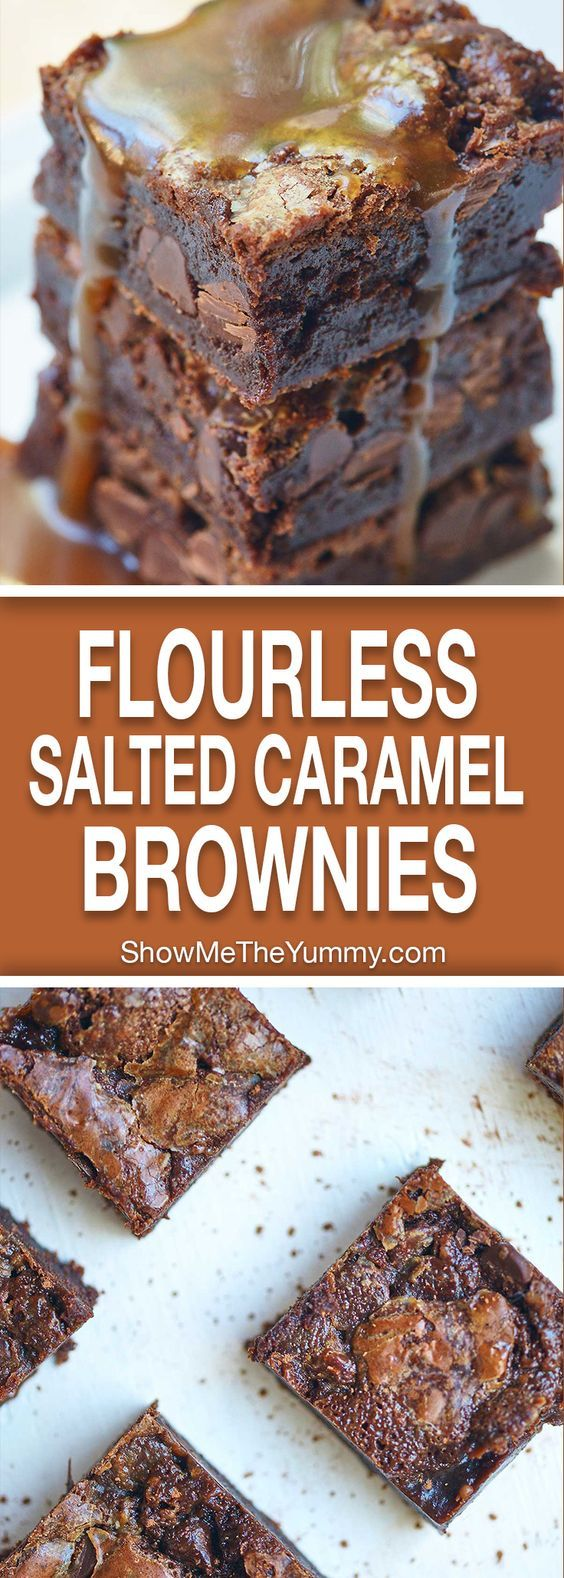 These flourless salted caramel brownies are gluten free, rich, fudgy, filled with salted caramel, and can be made ahead of time! showmetheyummy.com #brownies #caramel